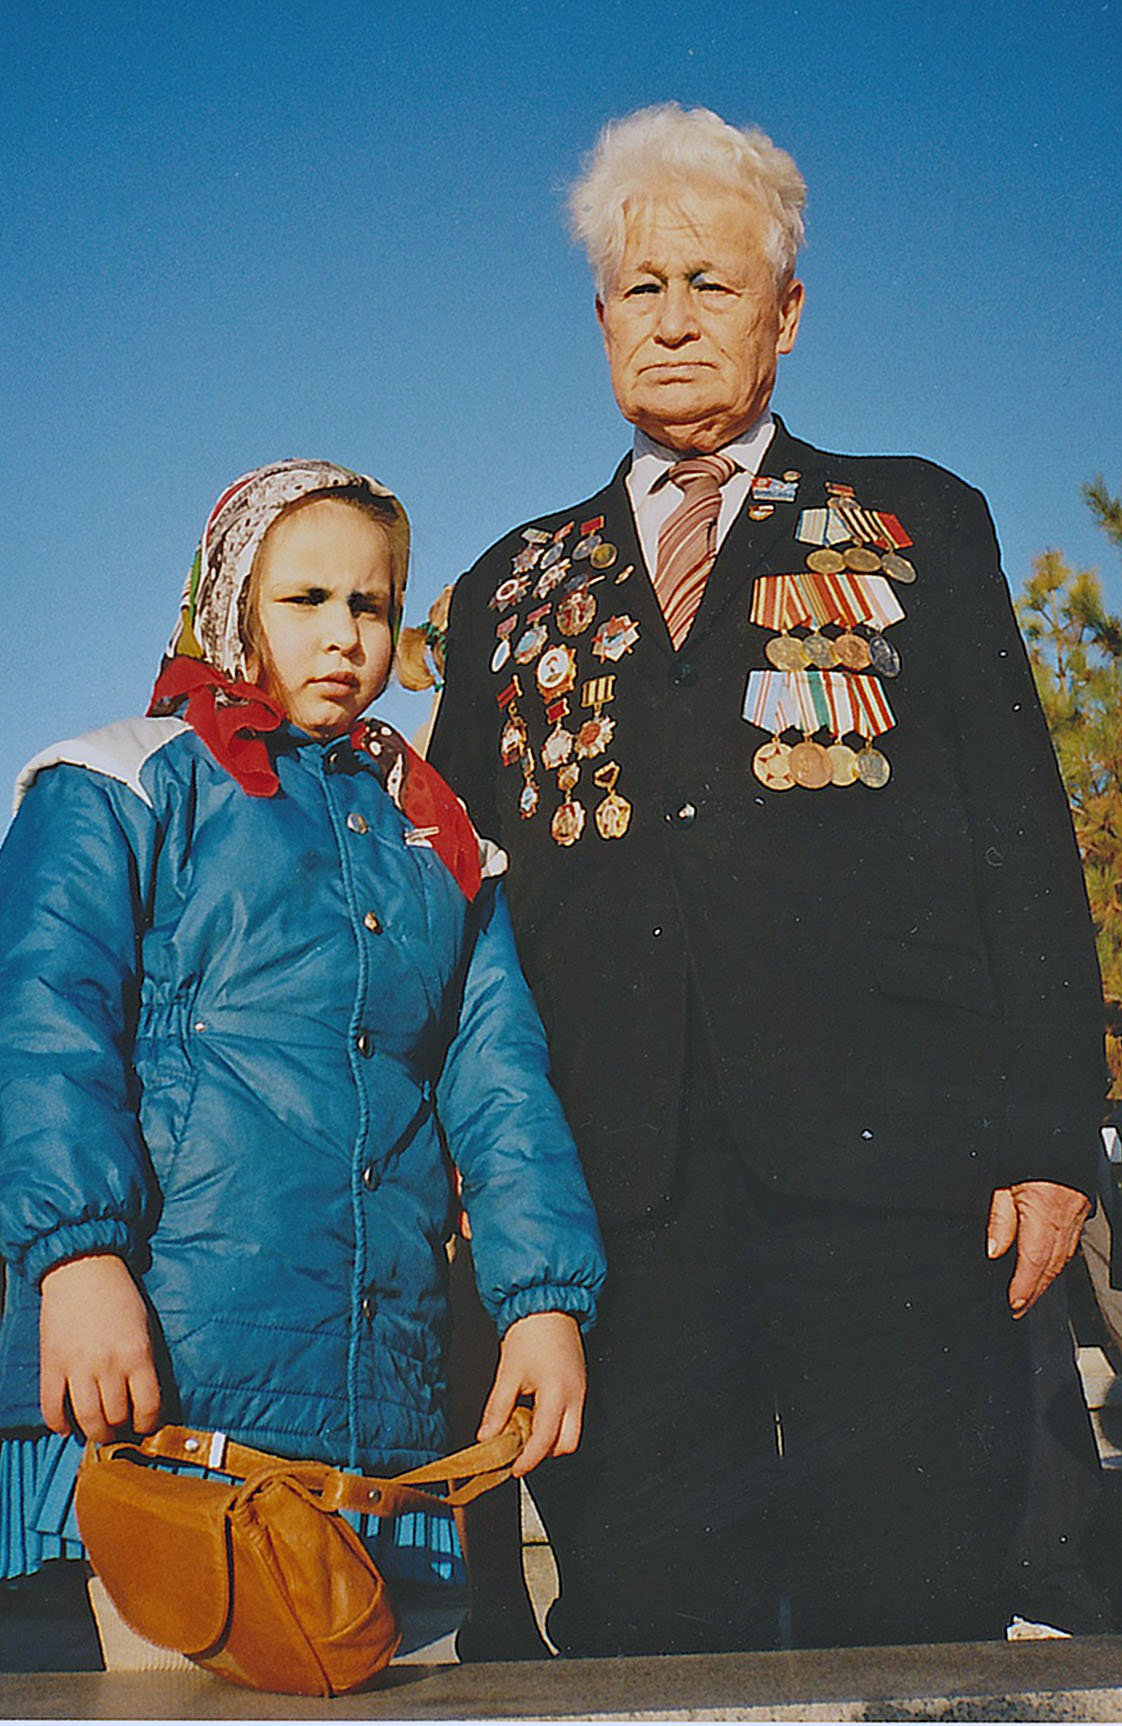 For young and old, hope for healthcare in Central Asia. (Tashkent, Uzbekistan, 1990)